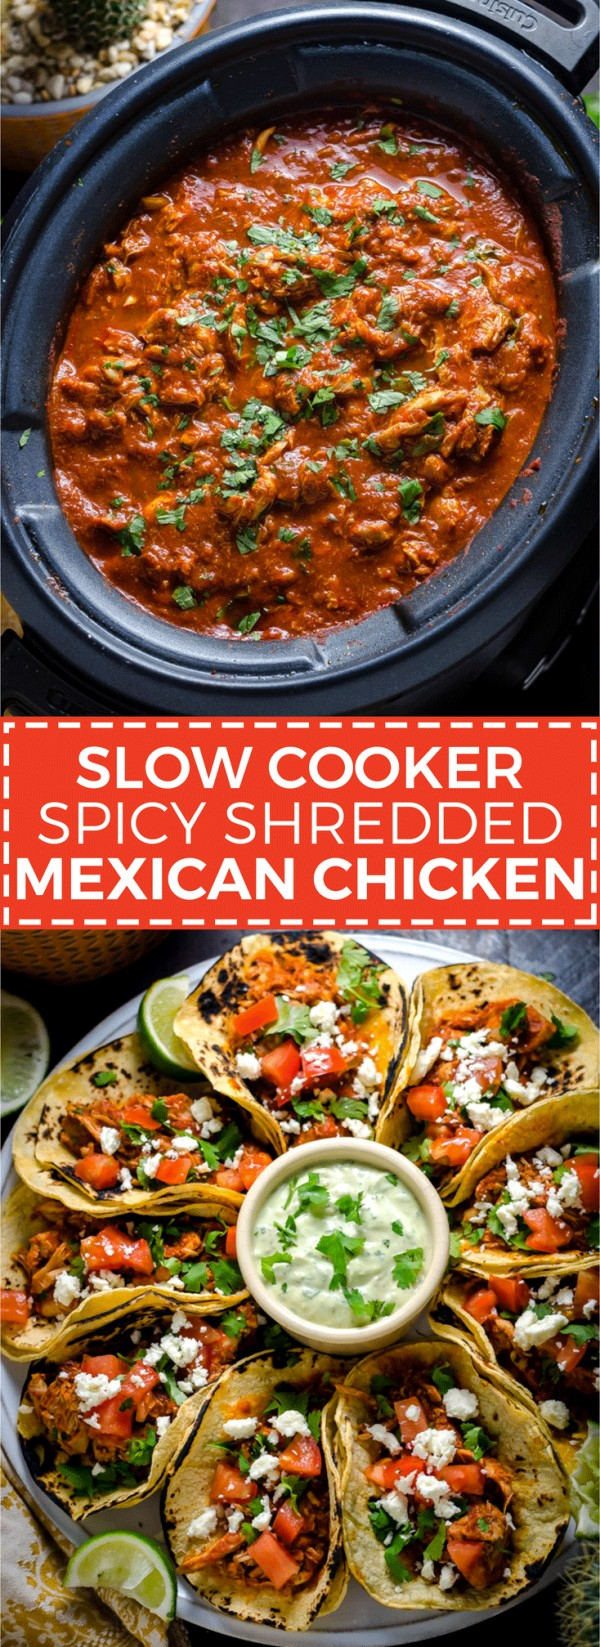 50 Best Chicken Recipes Ever - Check out this recipe for slow cooker spicy shredded Mexican chicken. Yummy! #RecipeIdeas @recipes_to_go